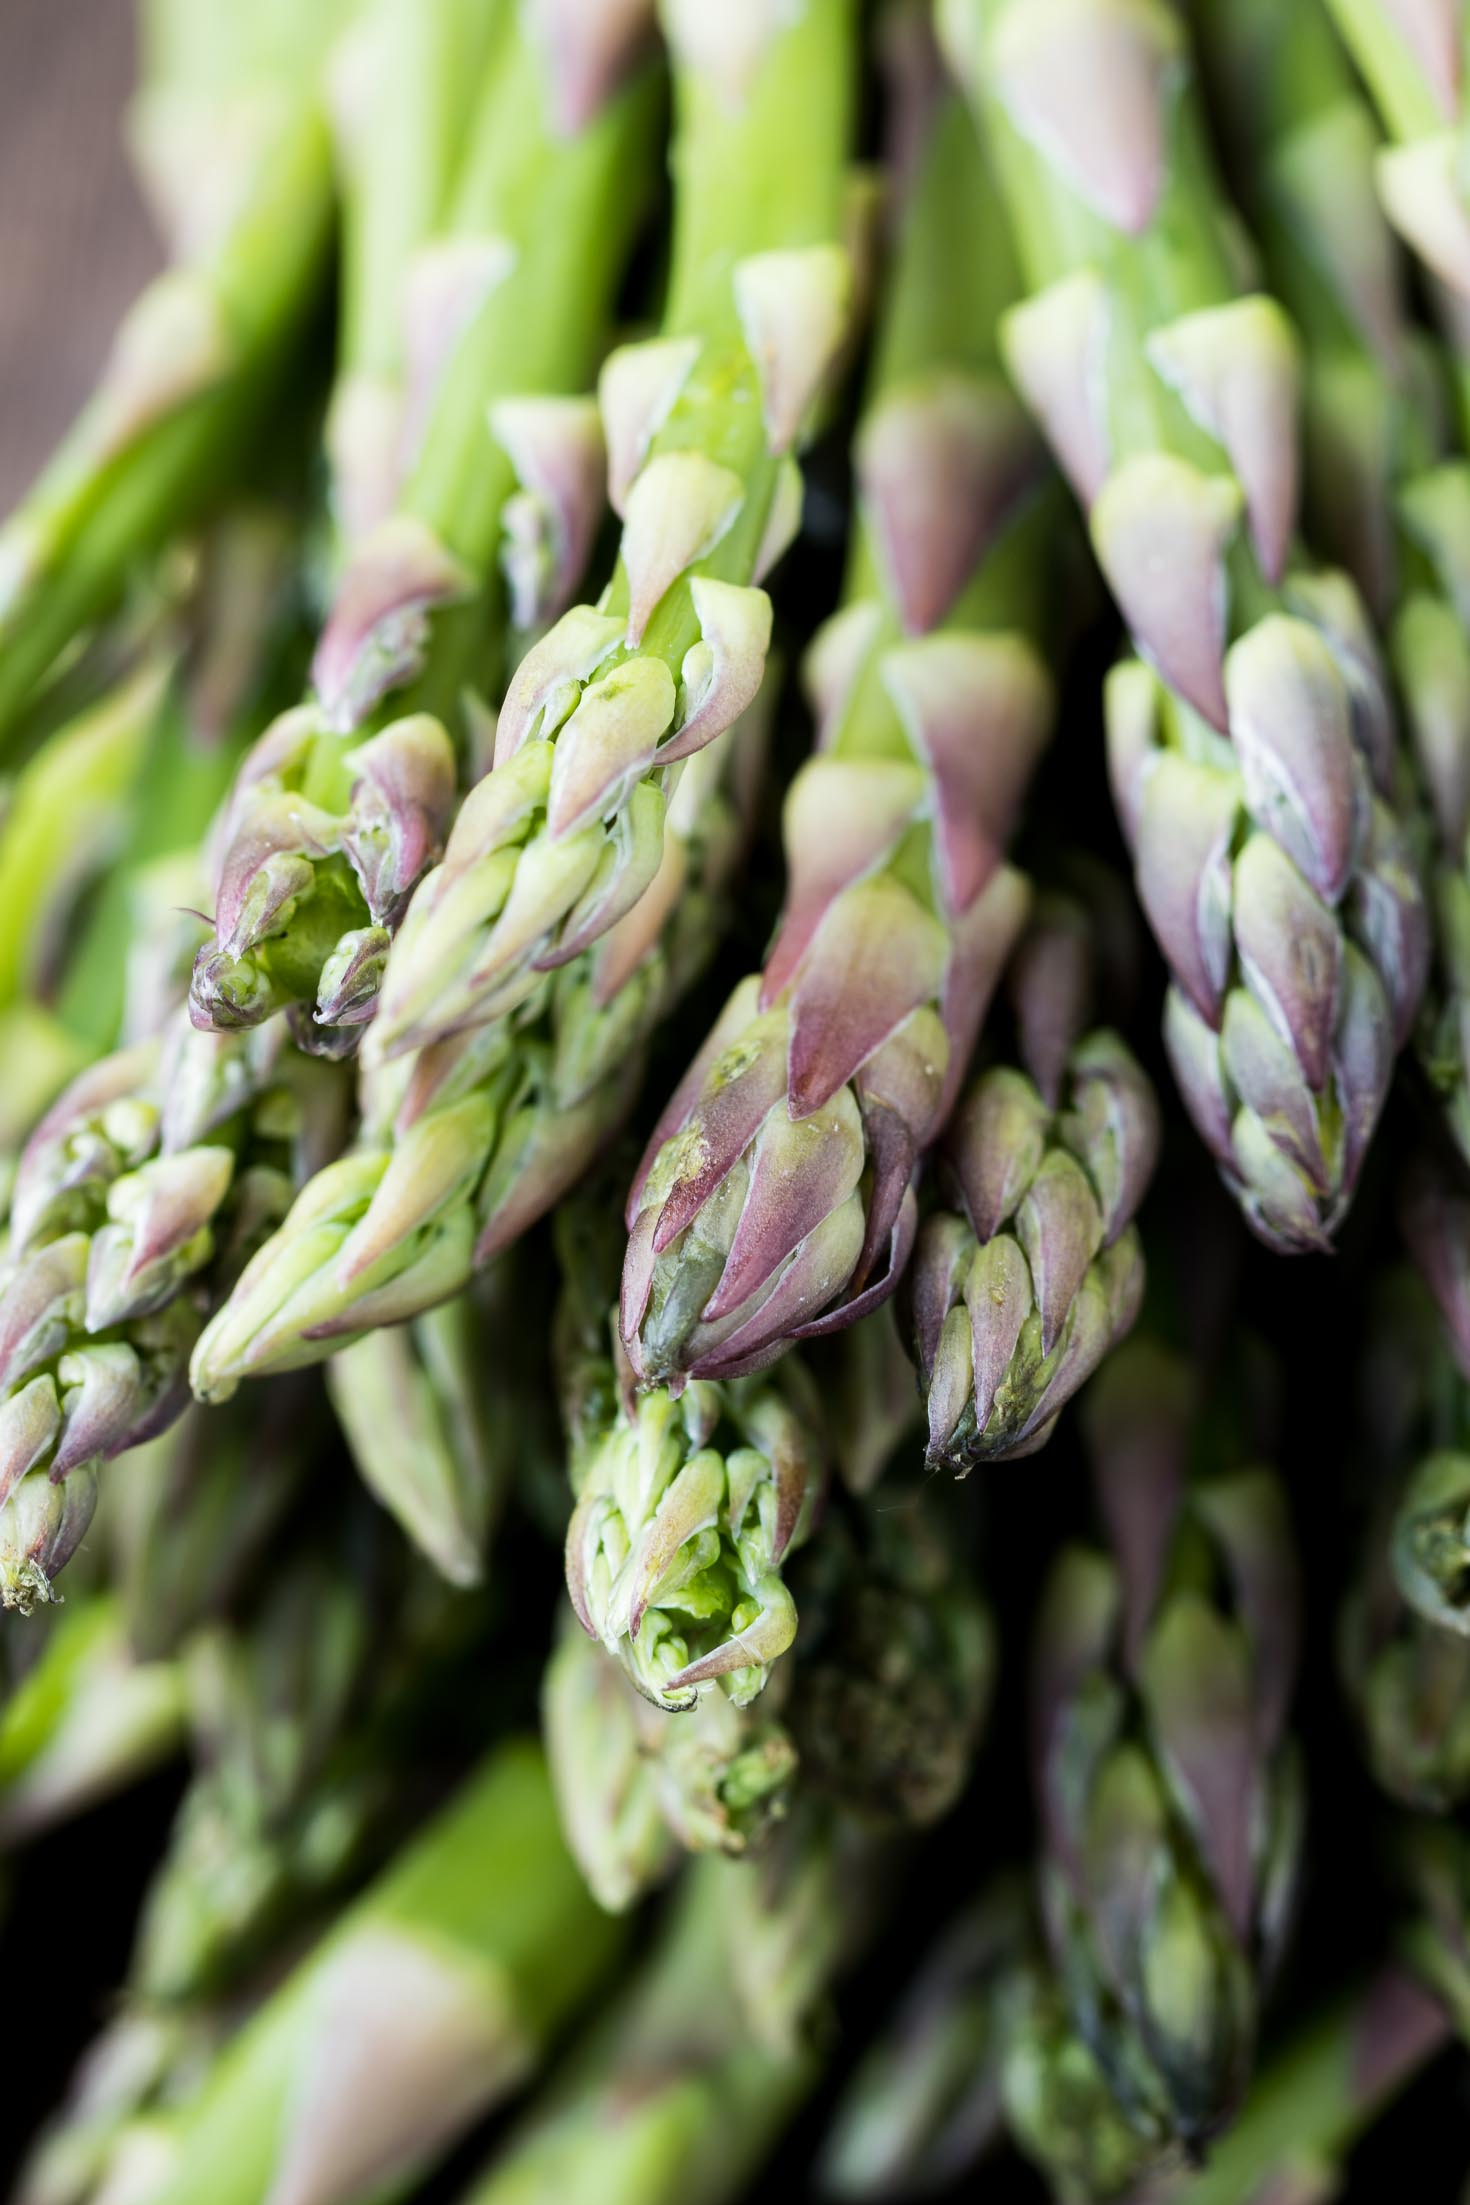 asparagus-close up view